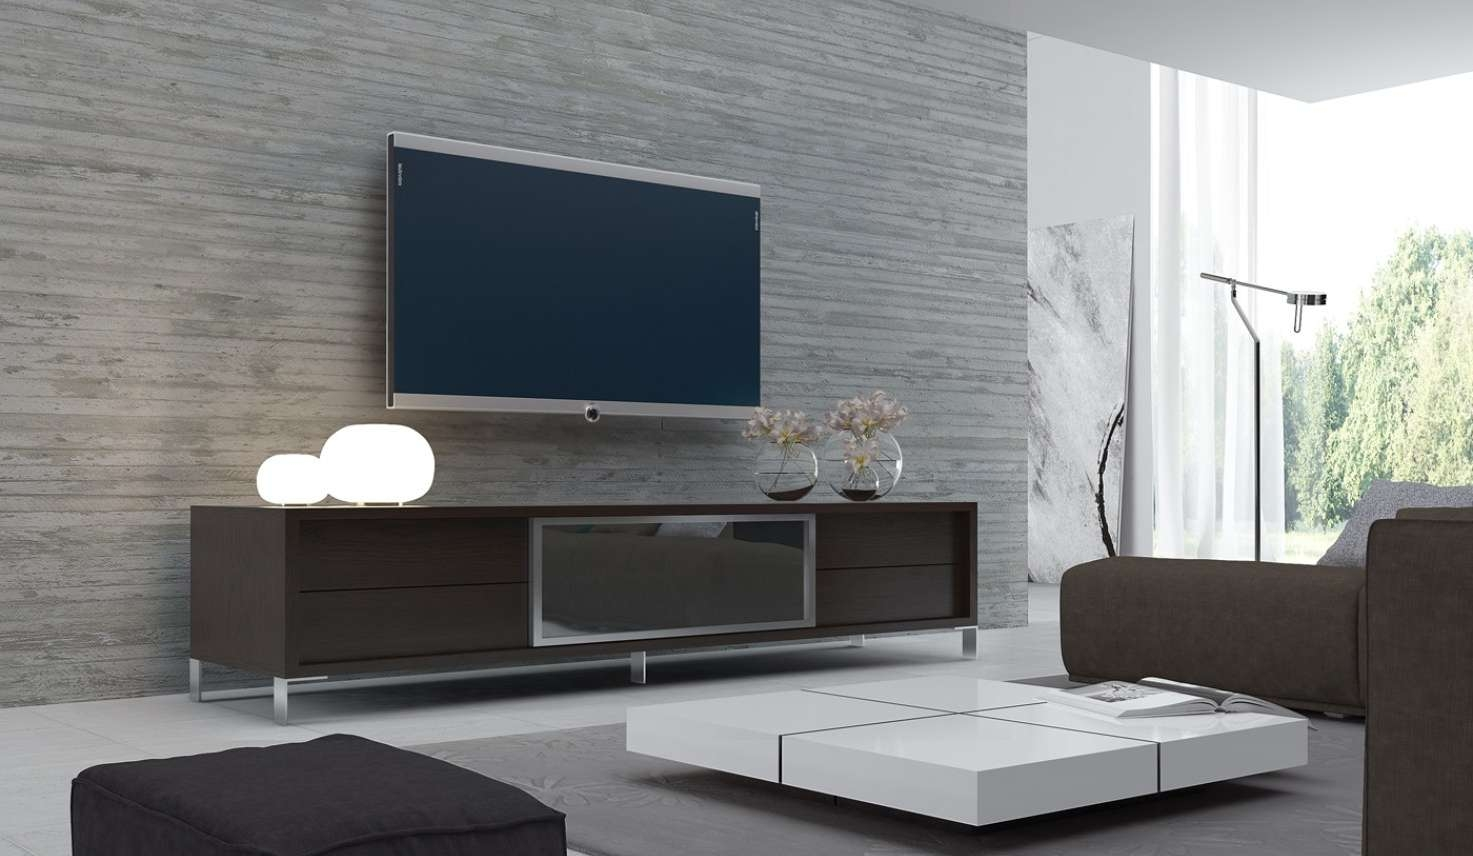 Tv : Exceptional Modern Tv Furniture Cabinets Modern Charm With Stylish Tv Cabinets (View 15 of 20)